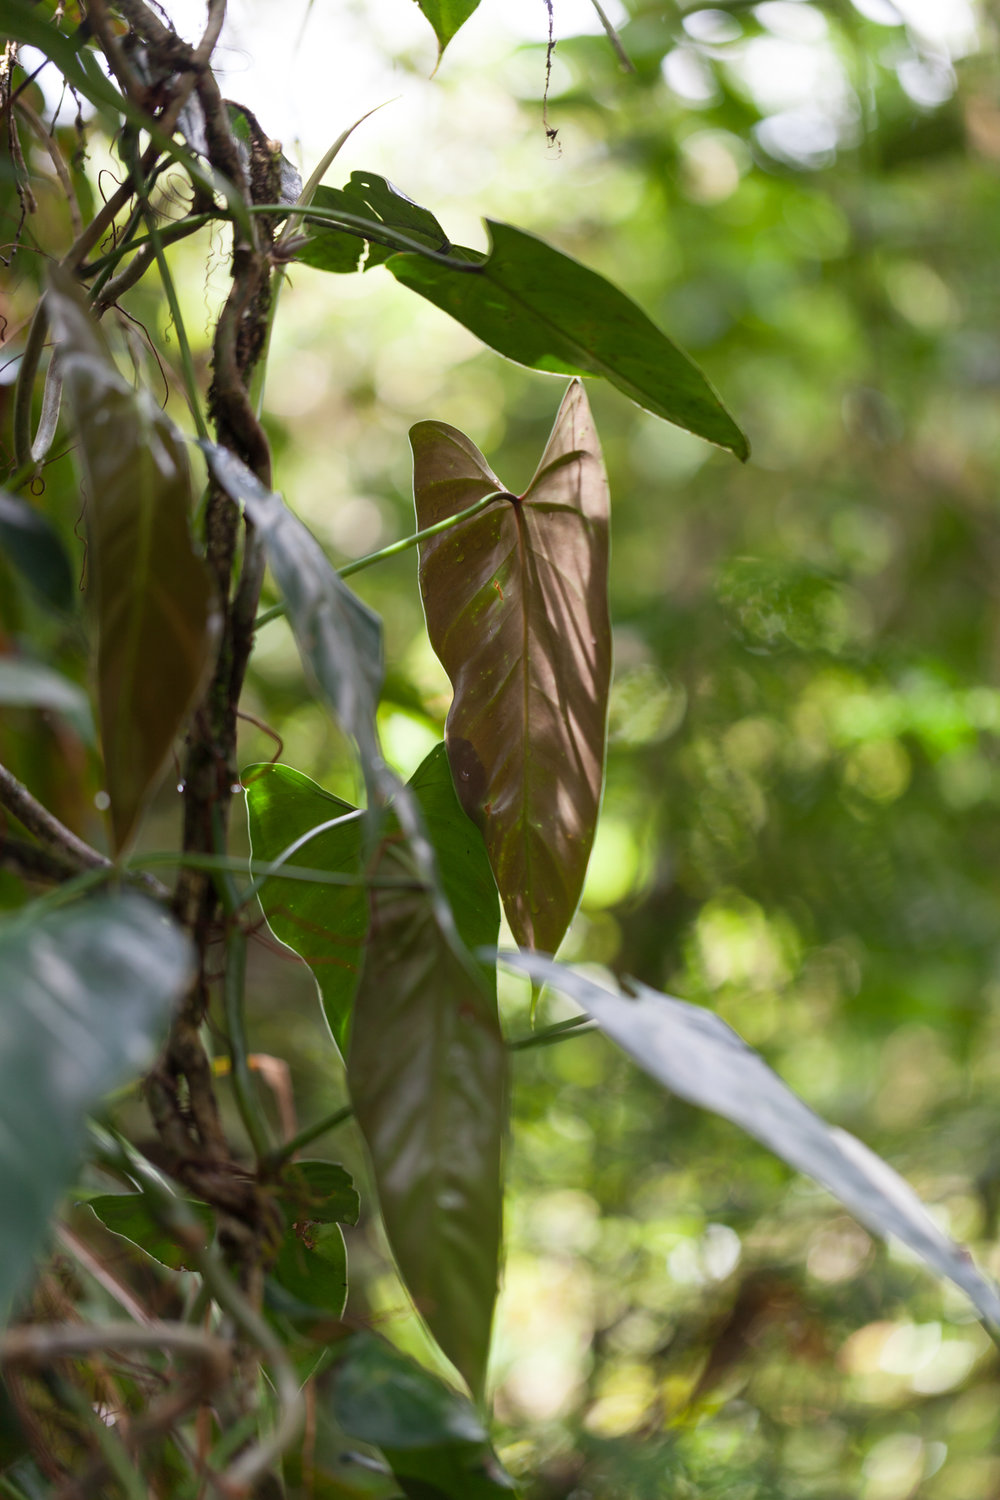 Philodendron-Tapanti-National-Park.jpg